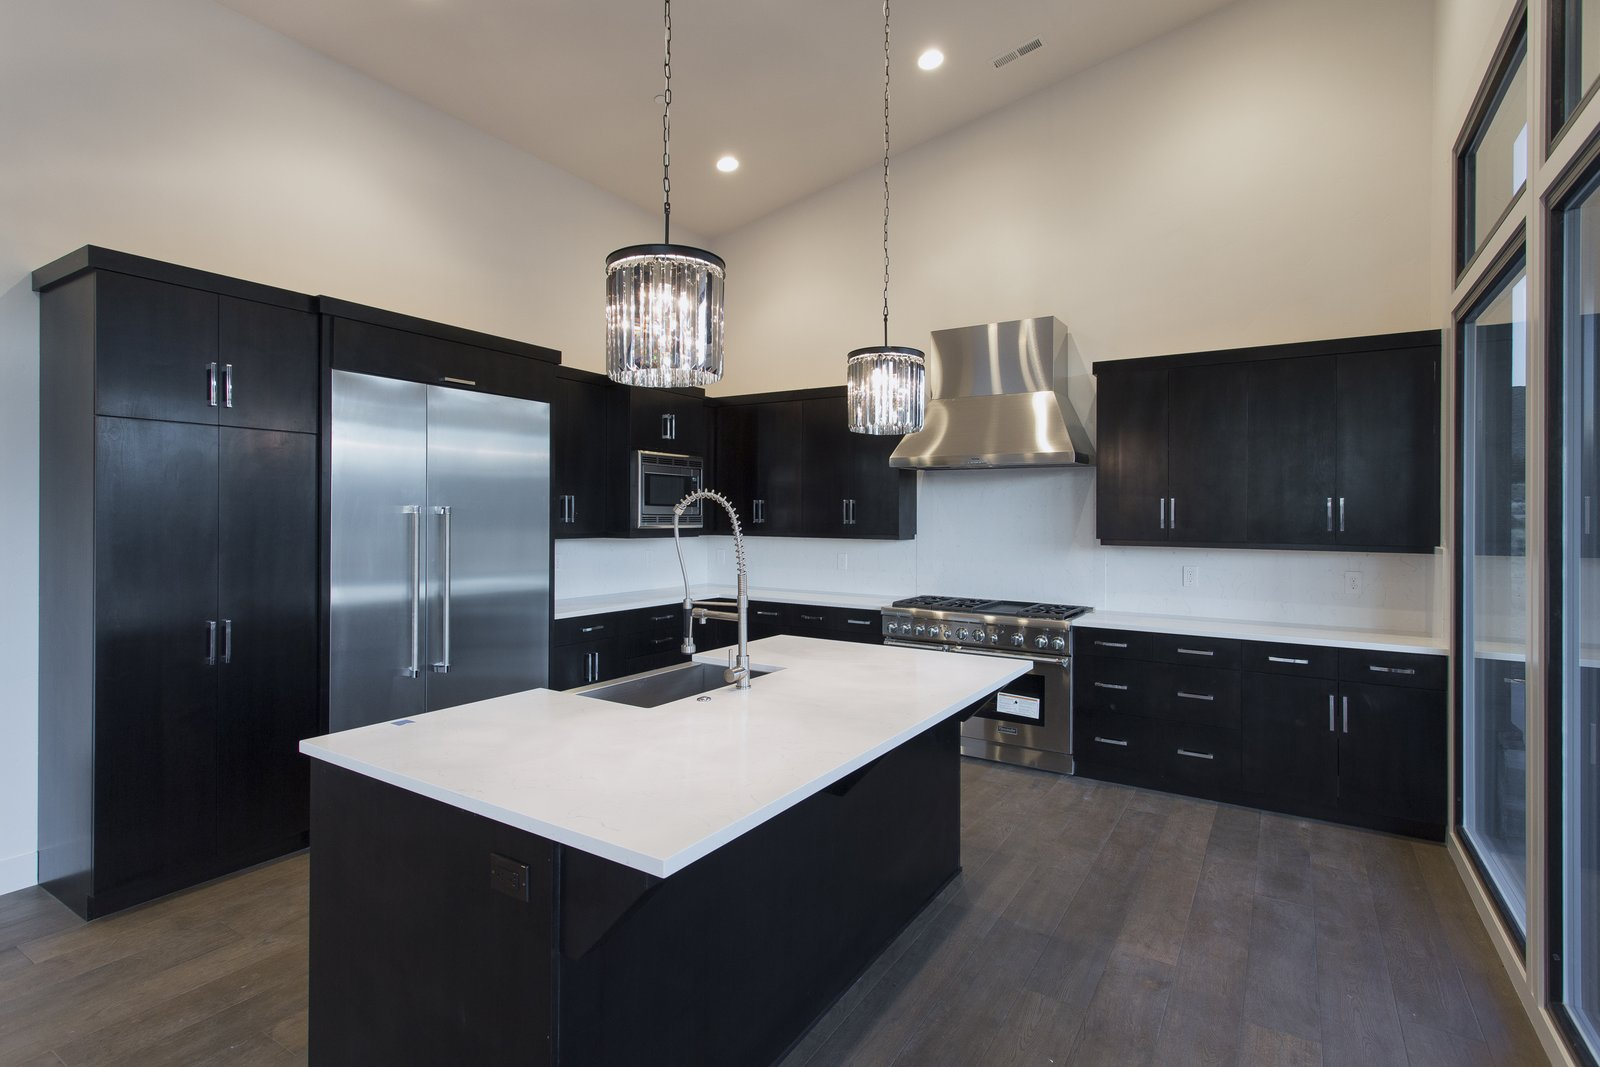 Dark brown cabinets accented with white cabinets